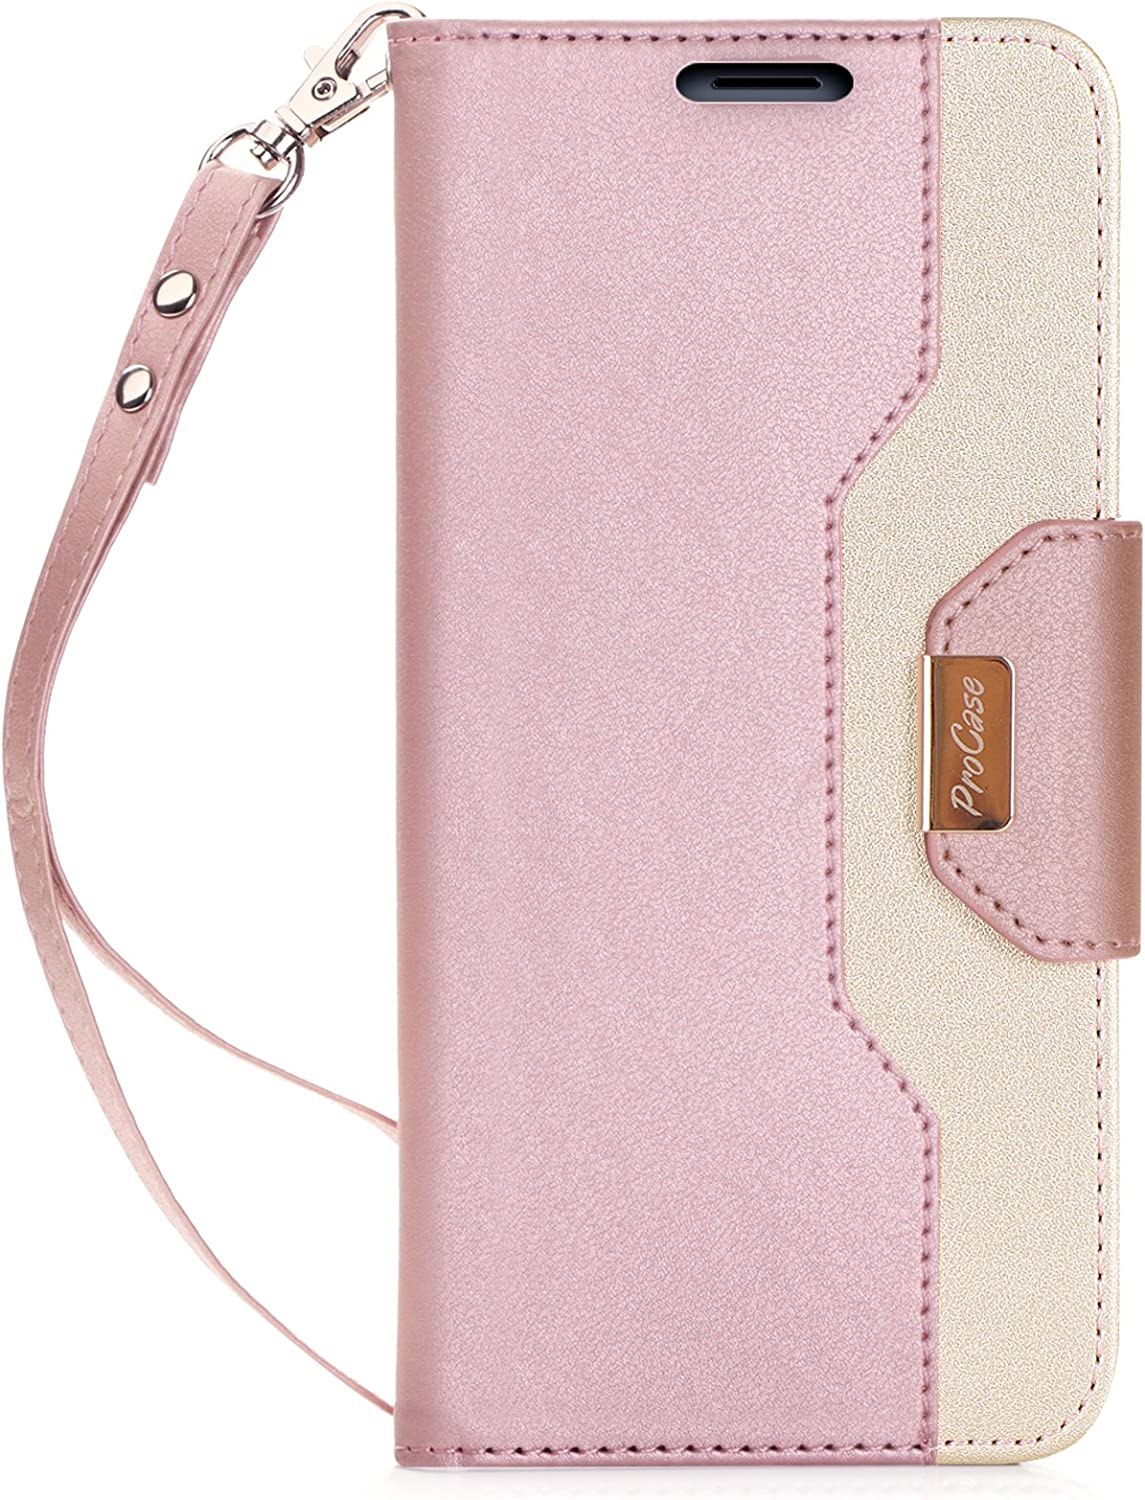 ProCase Galaxy Note 8 Wallet Case, Flip Kickstand Case with Card Slots Mirror Wristlet, Folding Stand Protective Cover for Galaxy Note8 2017 –Pink